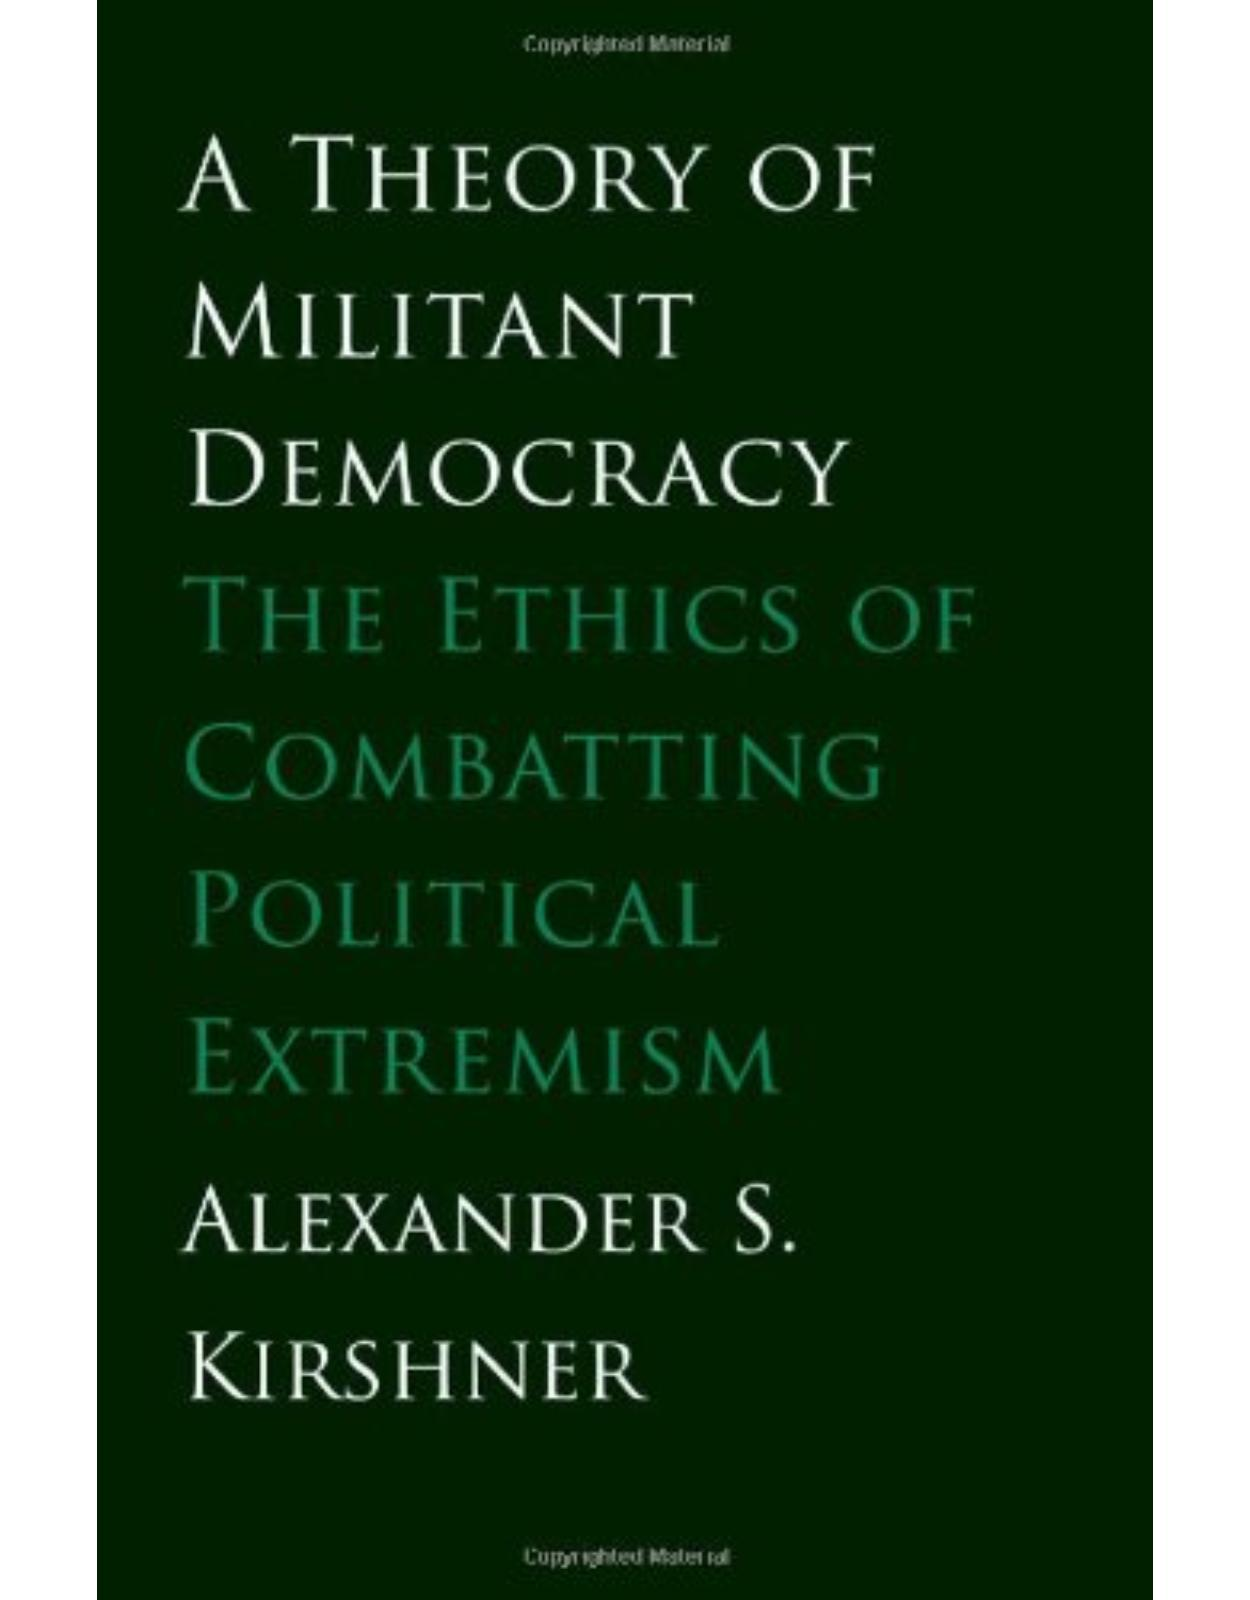 Theory of Militant Democracy. The Ethics of Combatting Political